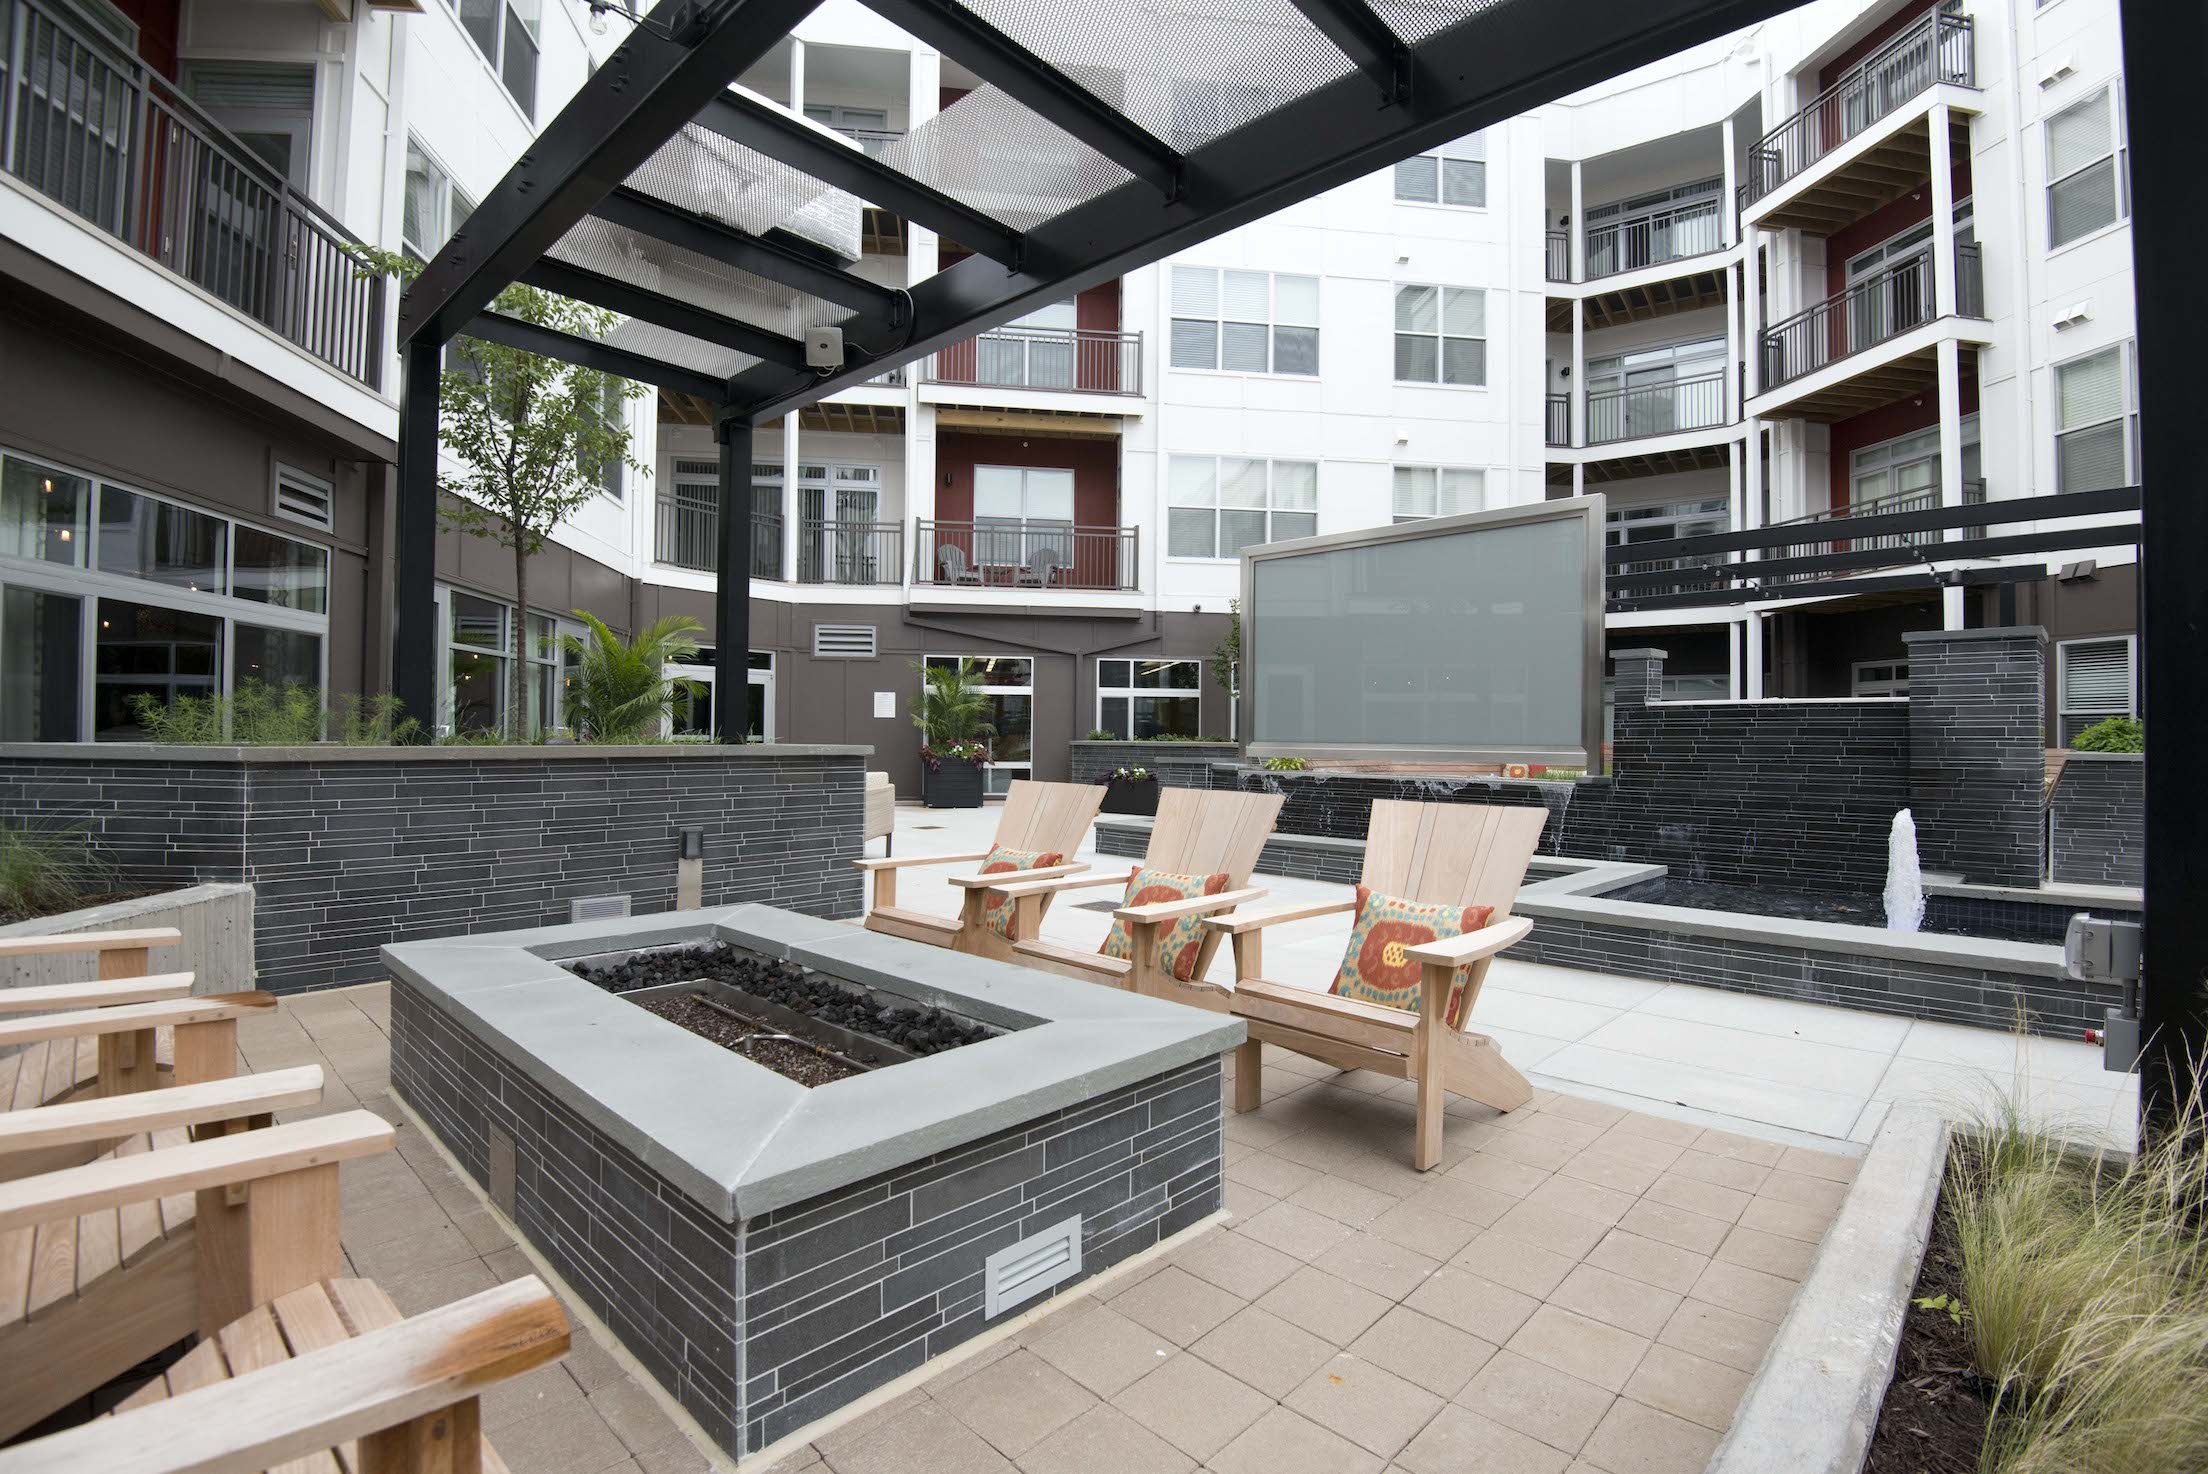 Apartment common area gas firepit with basalt stone tile used as the veneer